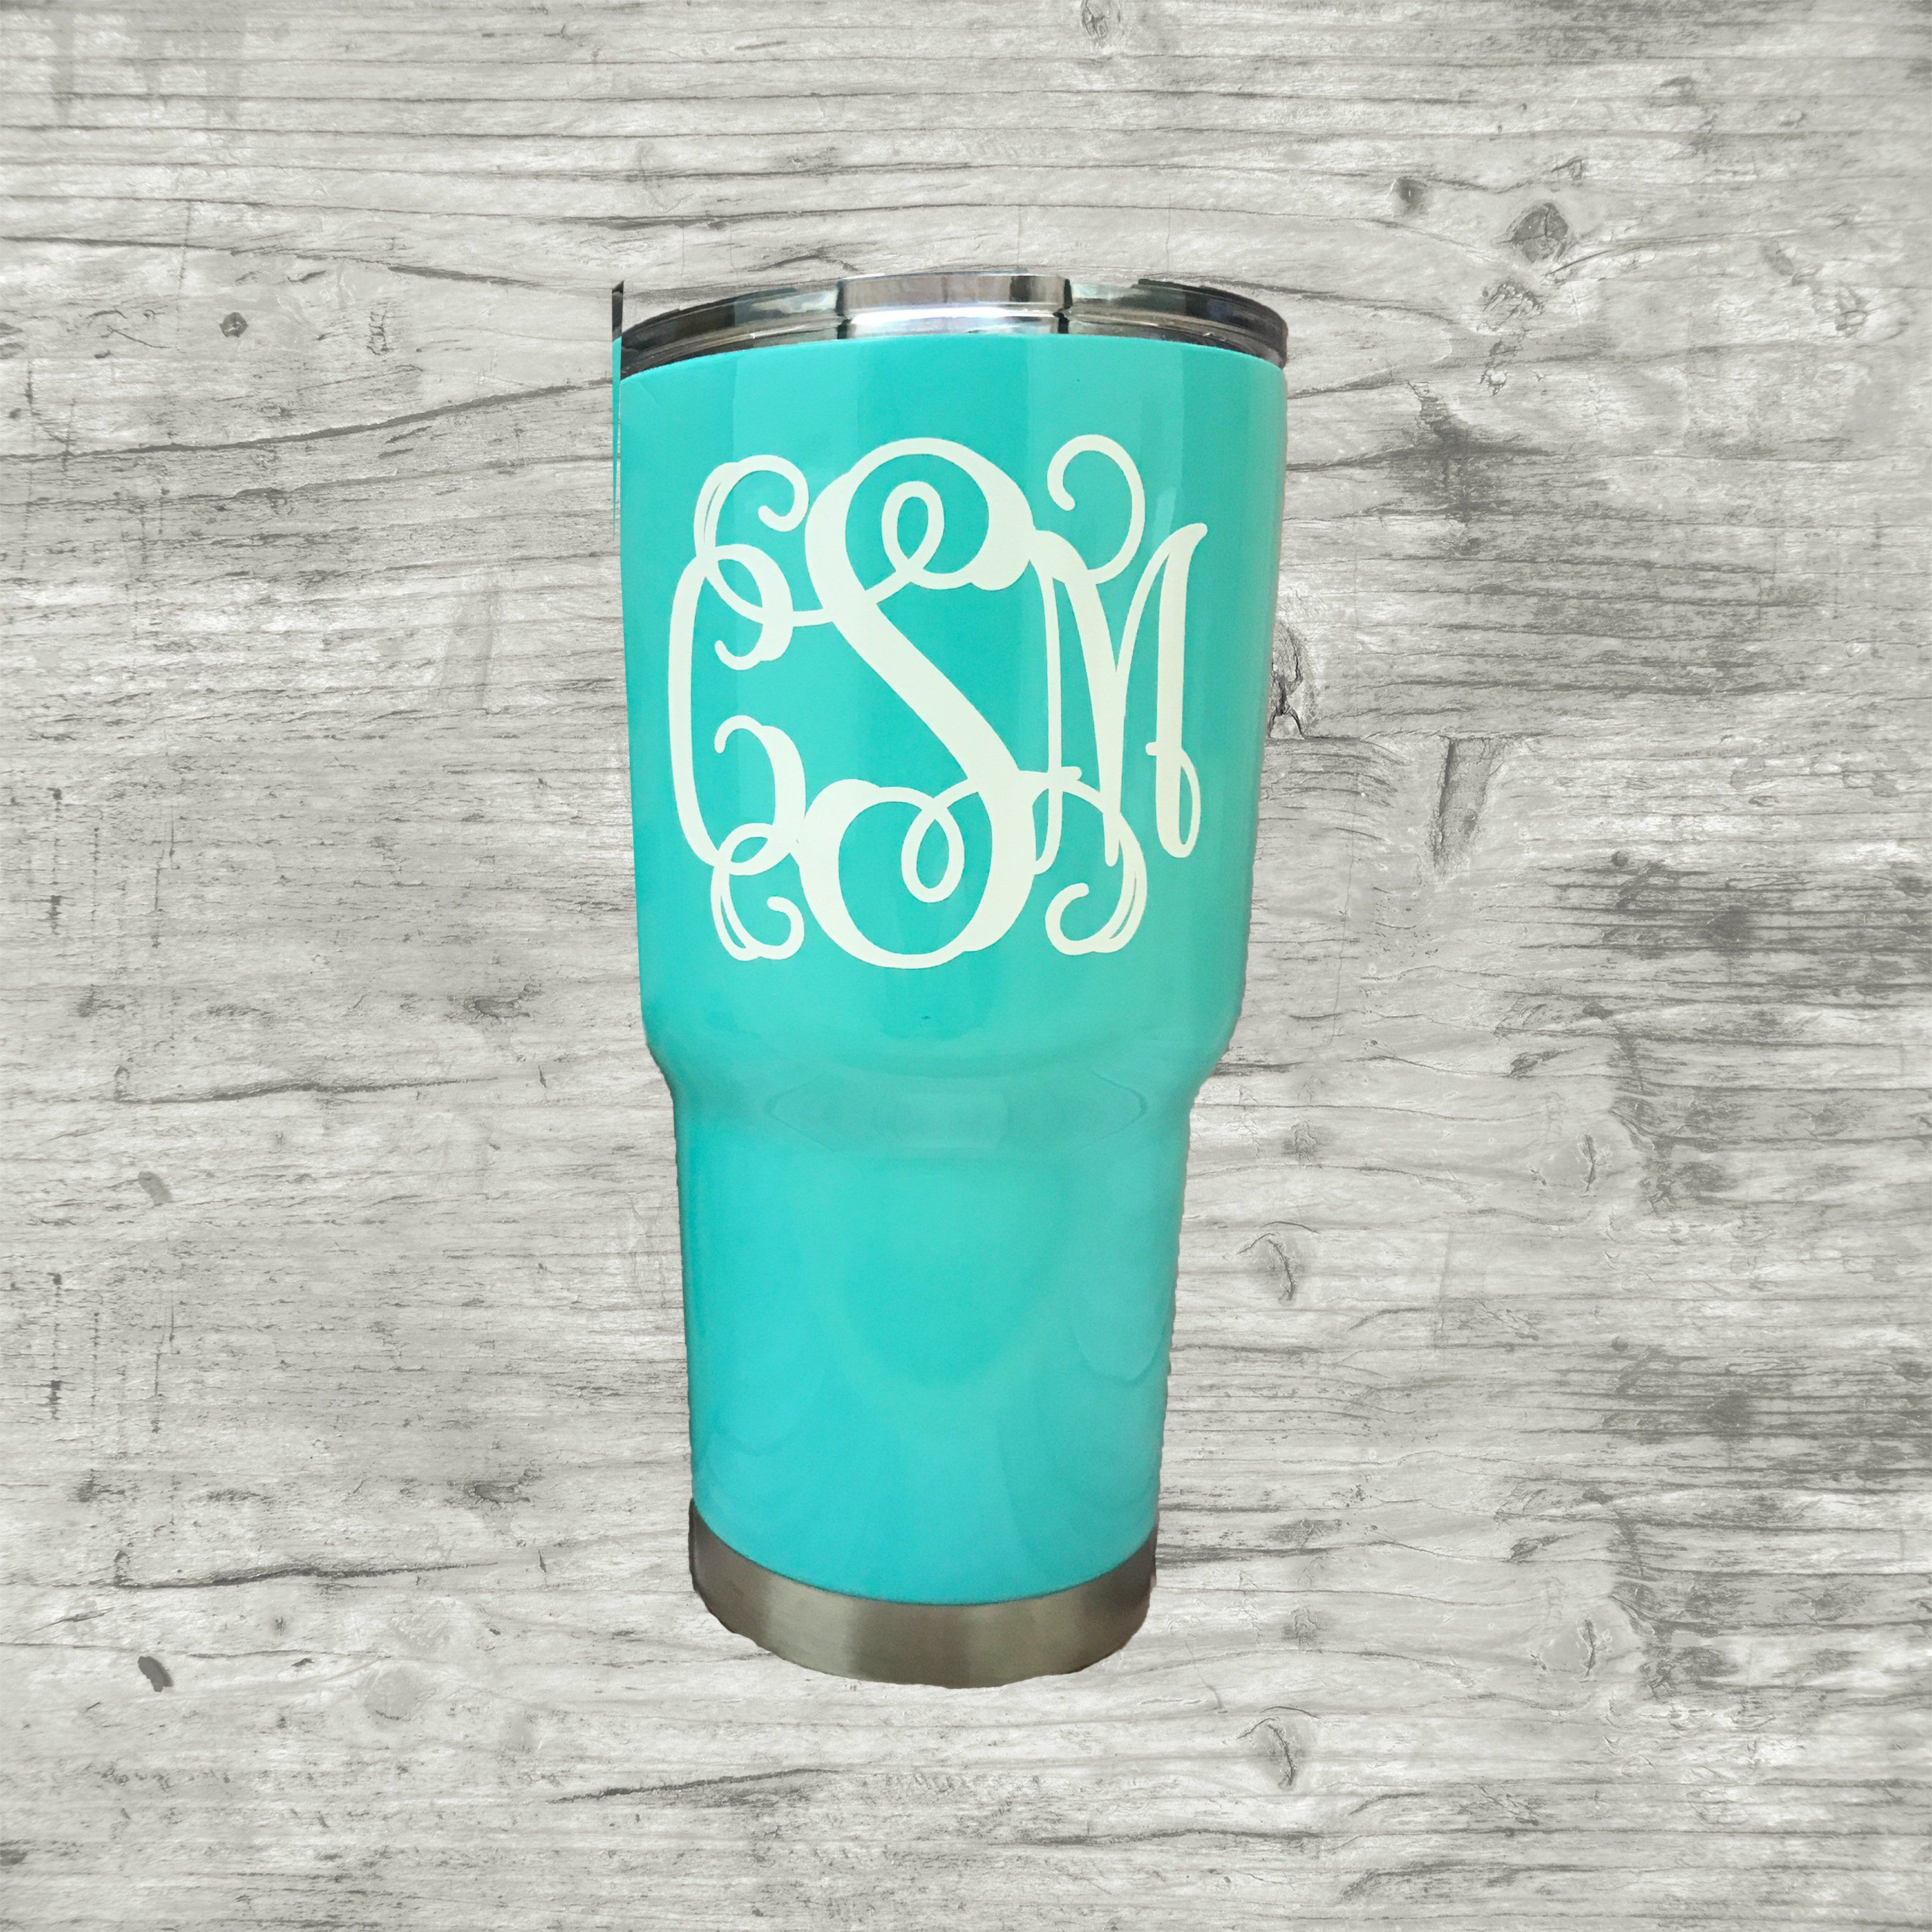 f2d9a9d1d7c Monogrammed Stainless Steel Tumbler, Monogrammed Stainless Steel Cup, Monogrammed  tumbler, Mint RTIC tumbler, Personalized Cup Gift by BluegrassFarmsBtq on  ...